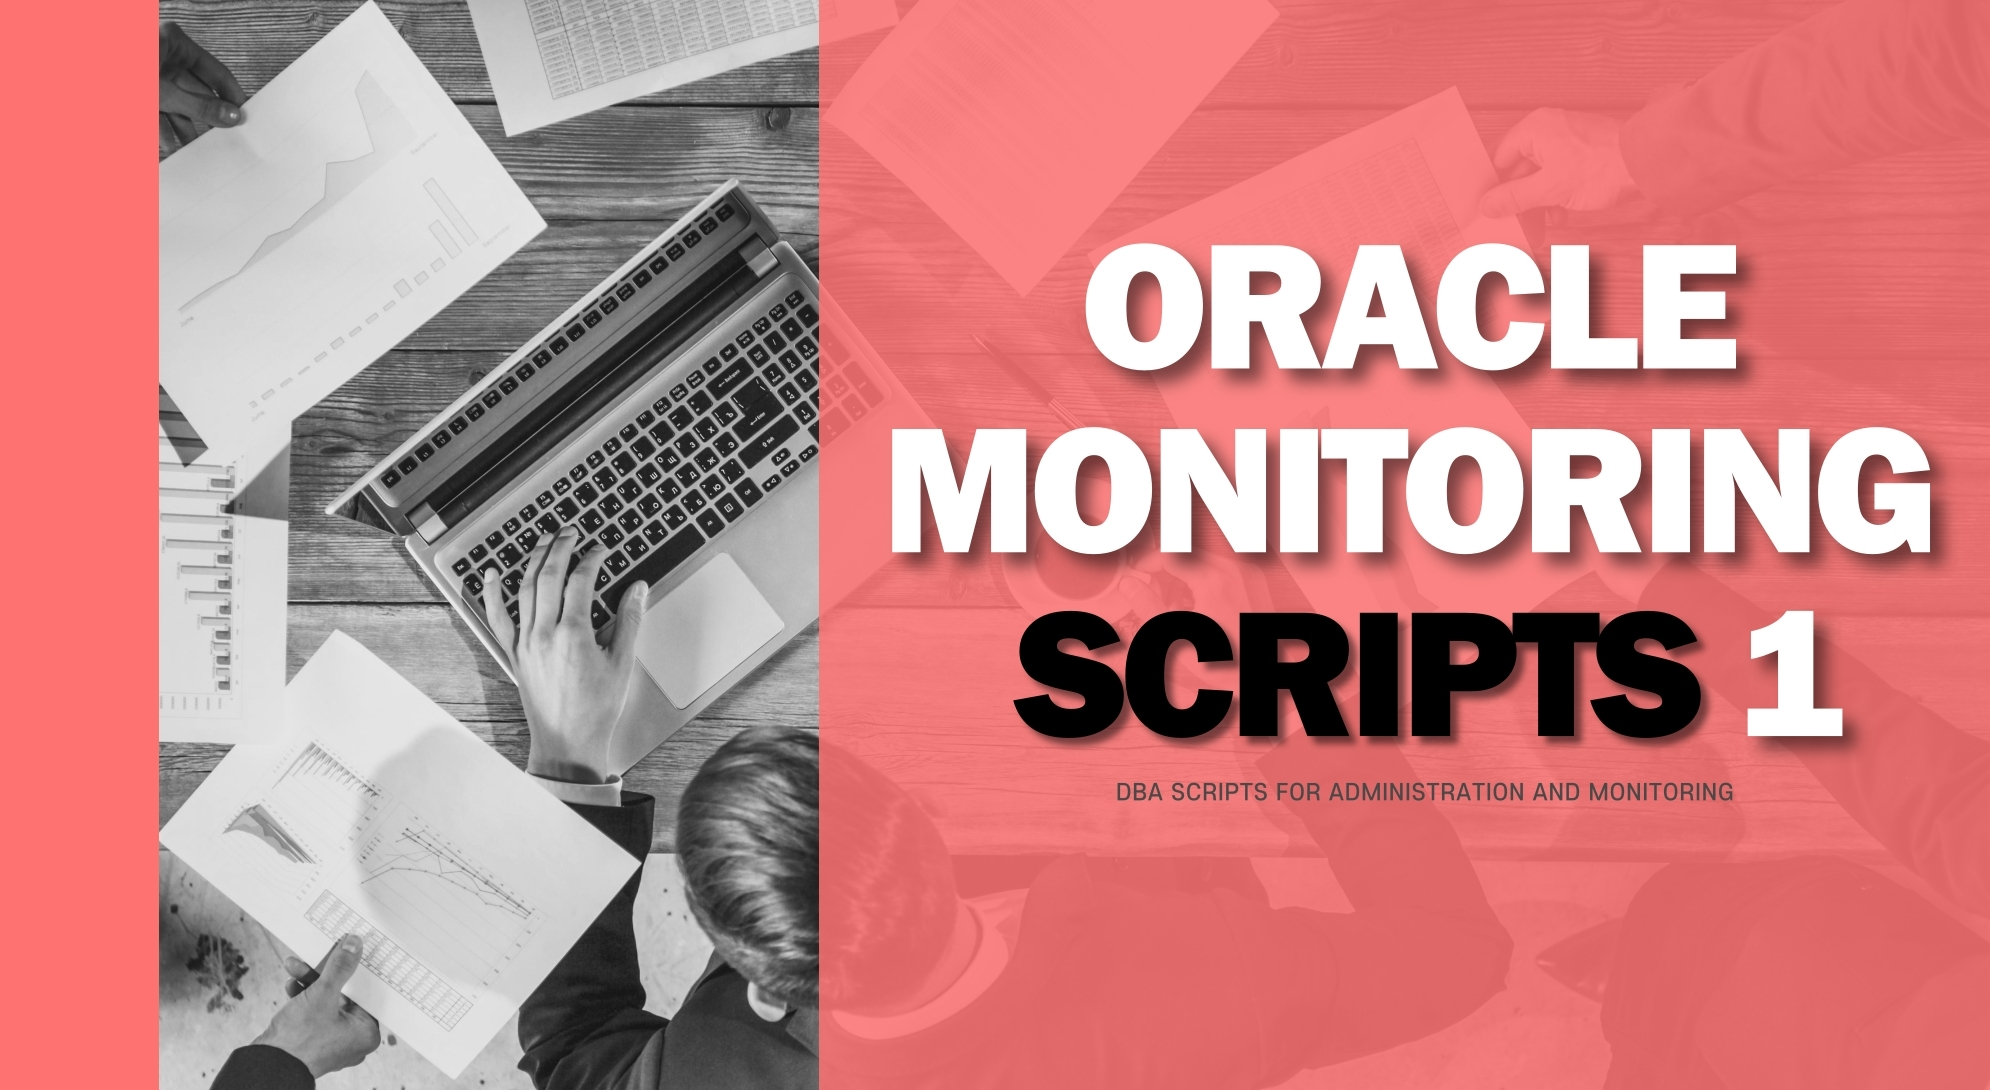 Oracle Monitoring Scripts 1